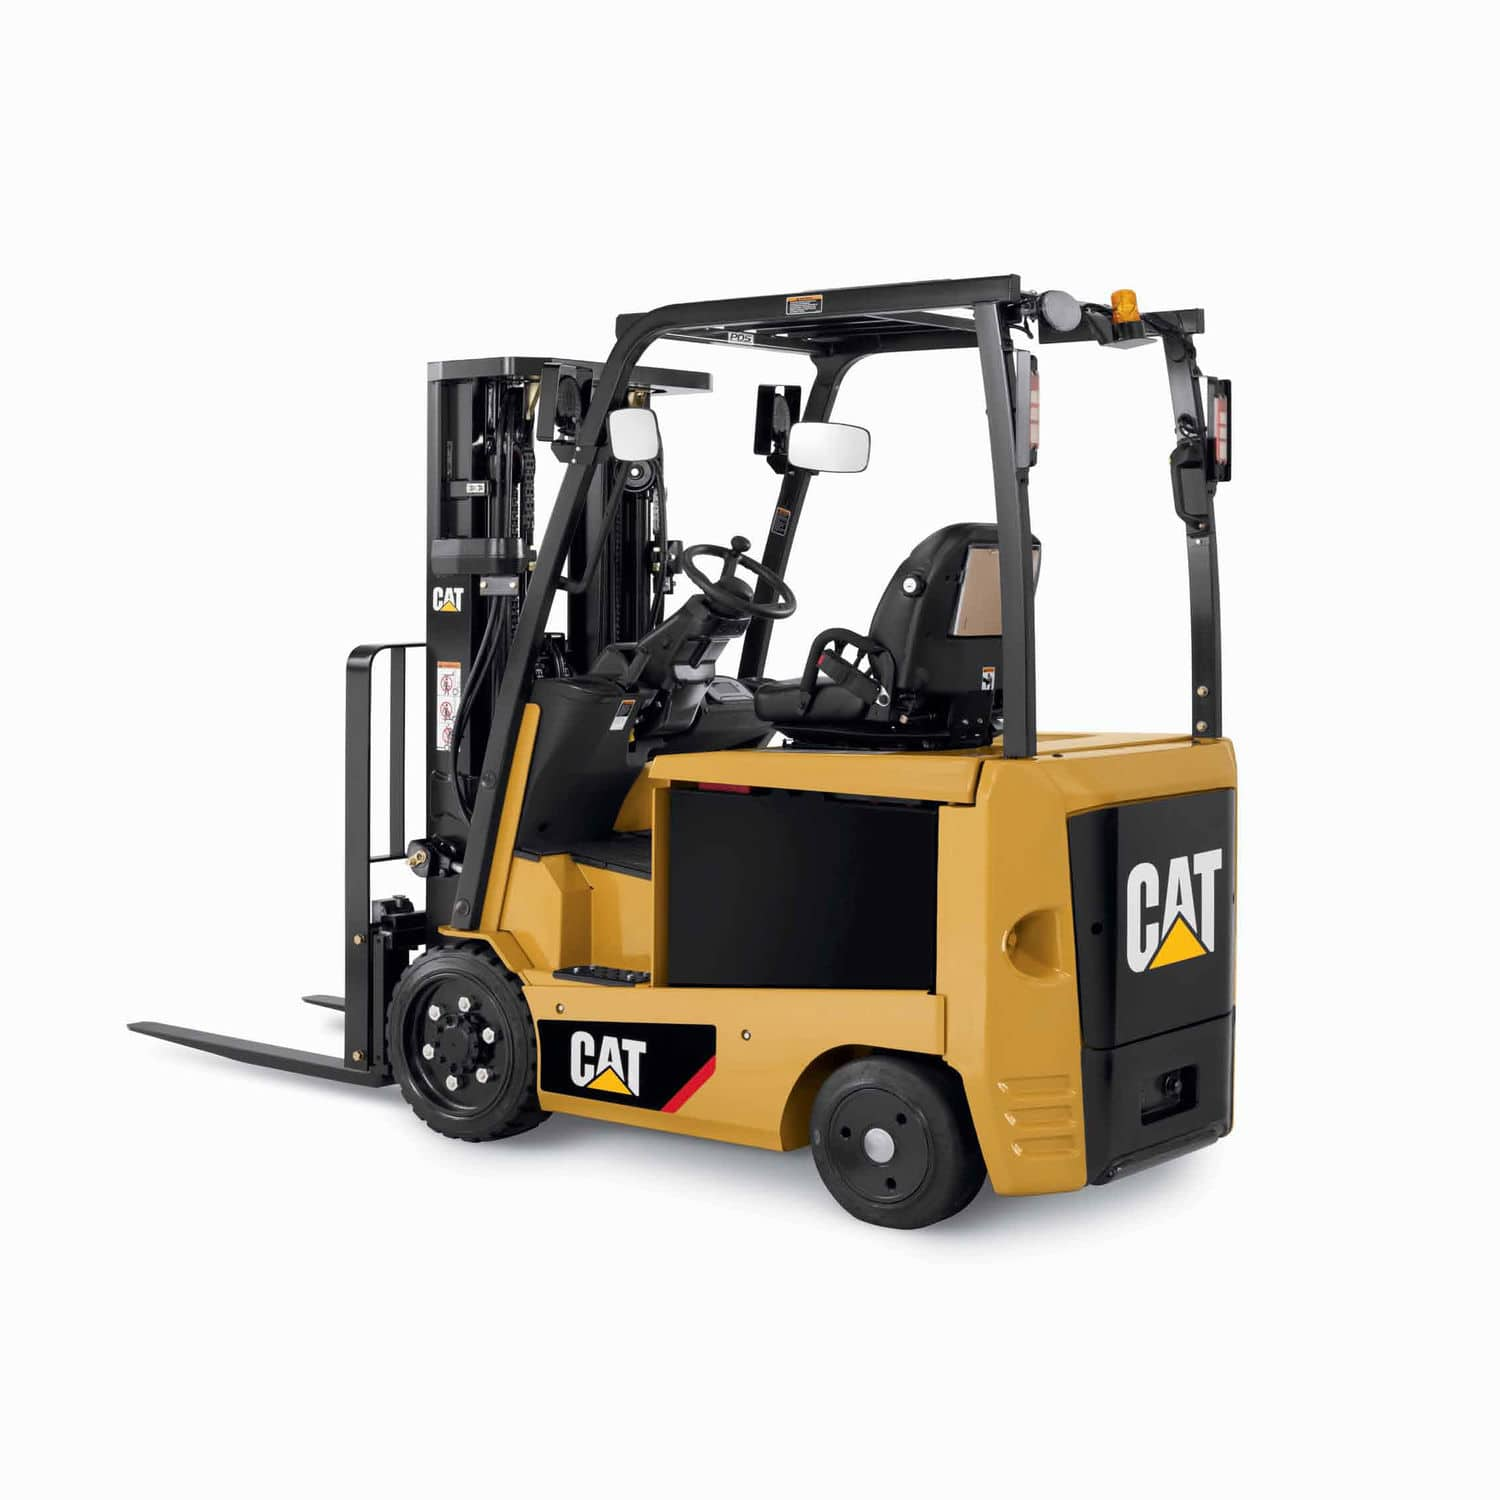 Electric forklift ride on handling cushion tire ecxxn2 ecxxln2 series